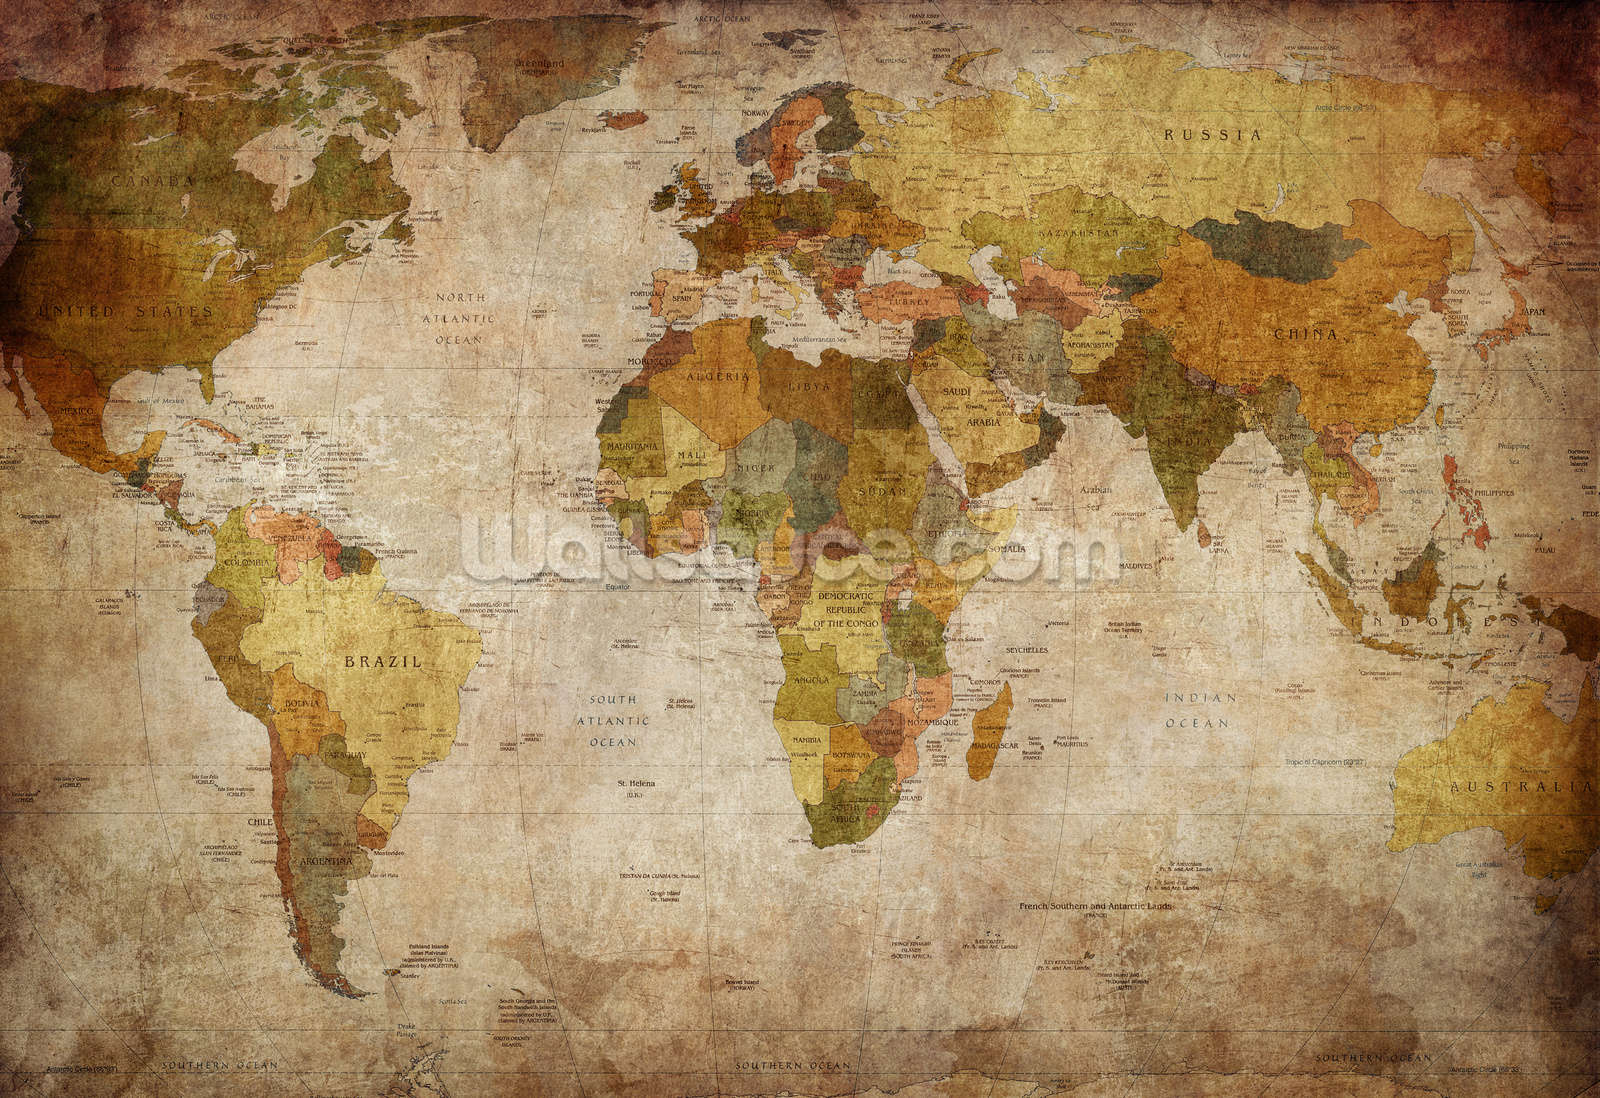 Old style world map wallpaper wall mural wallsauce usa - Posters gigantes para pared ...